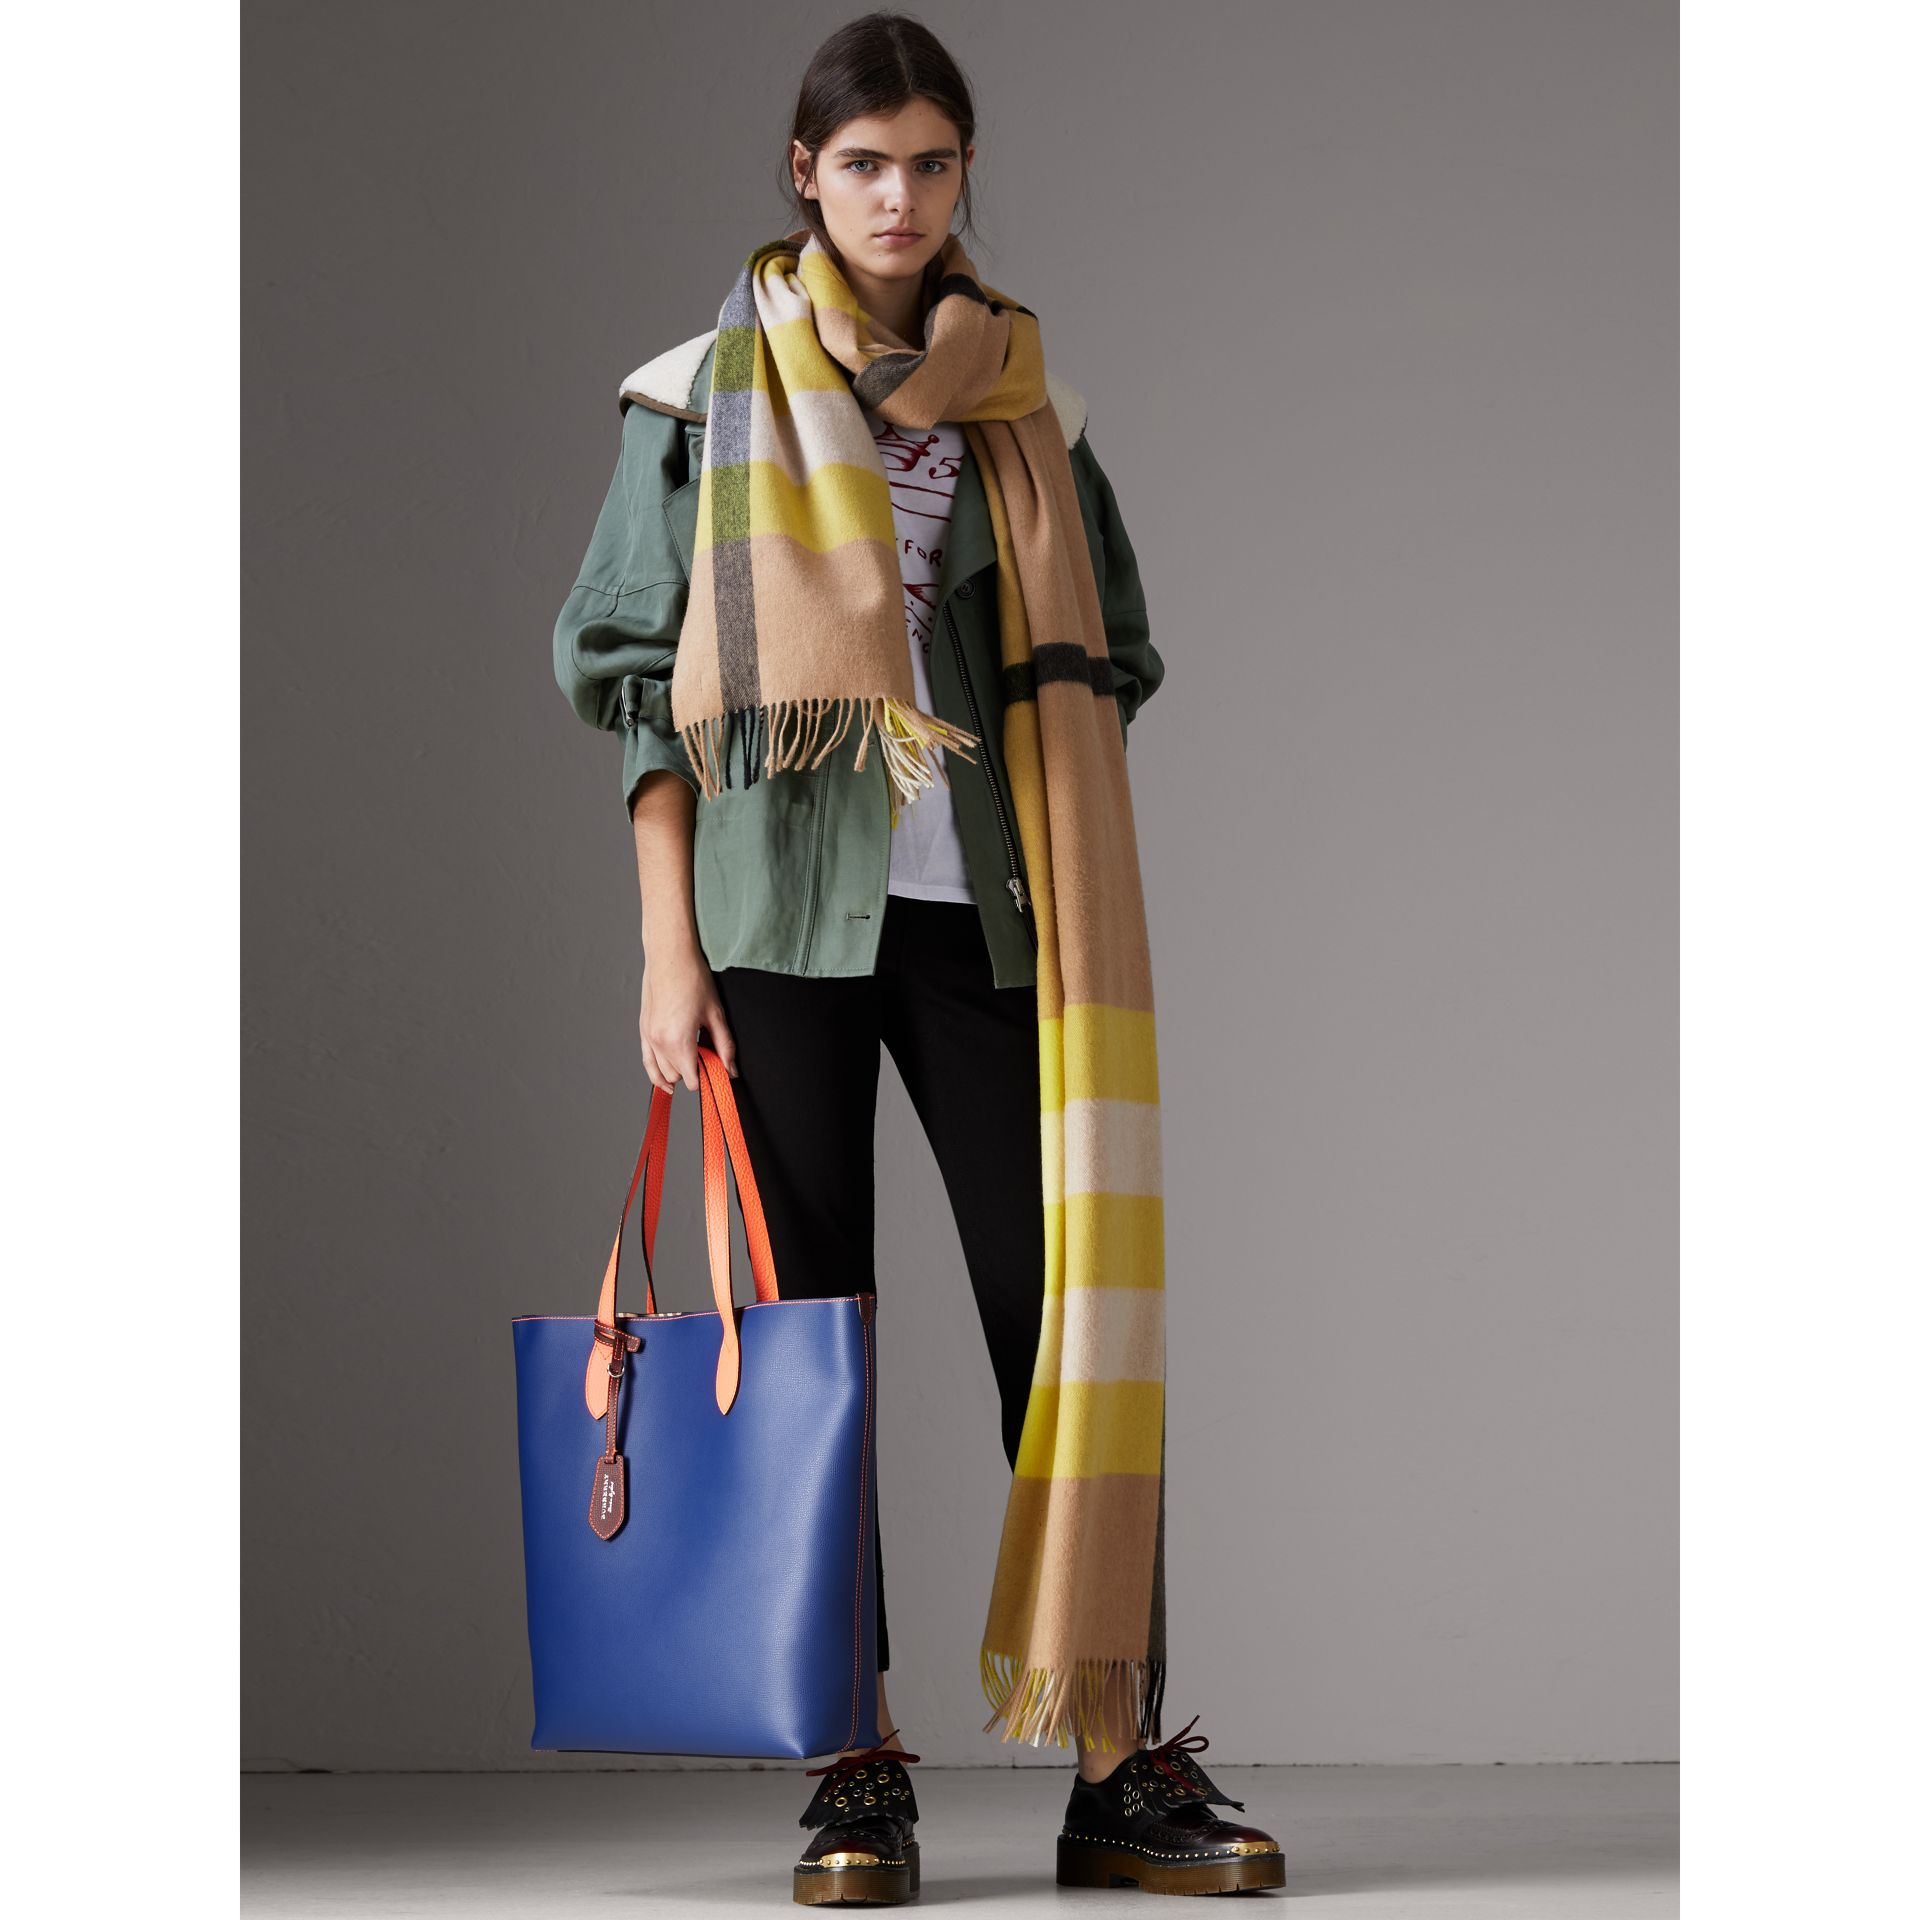 Medium Two-tone Coated Leather Tote in Dark Ultramarine | Burberry Australia - gallery image 2